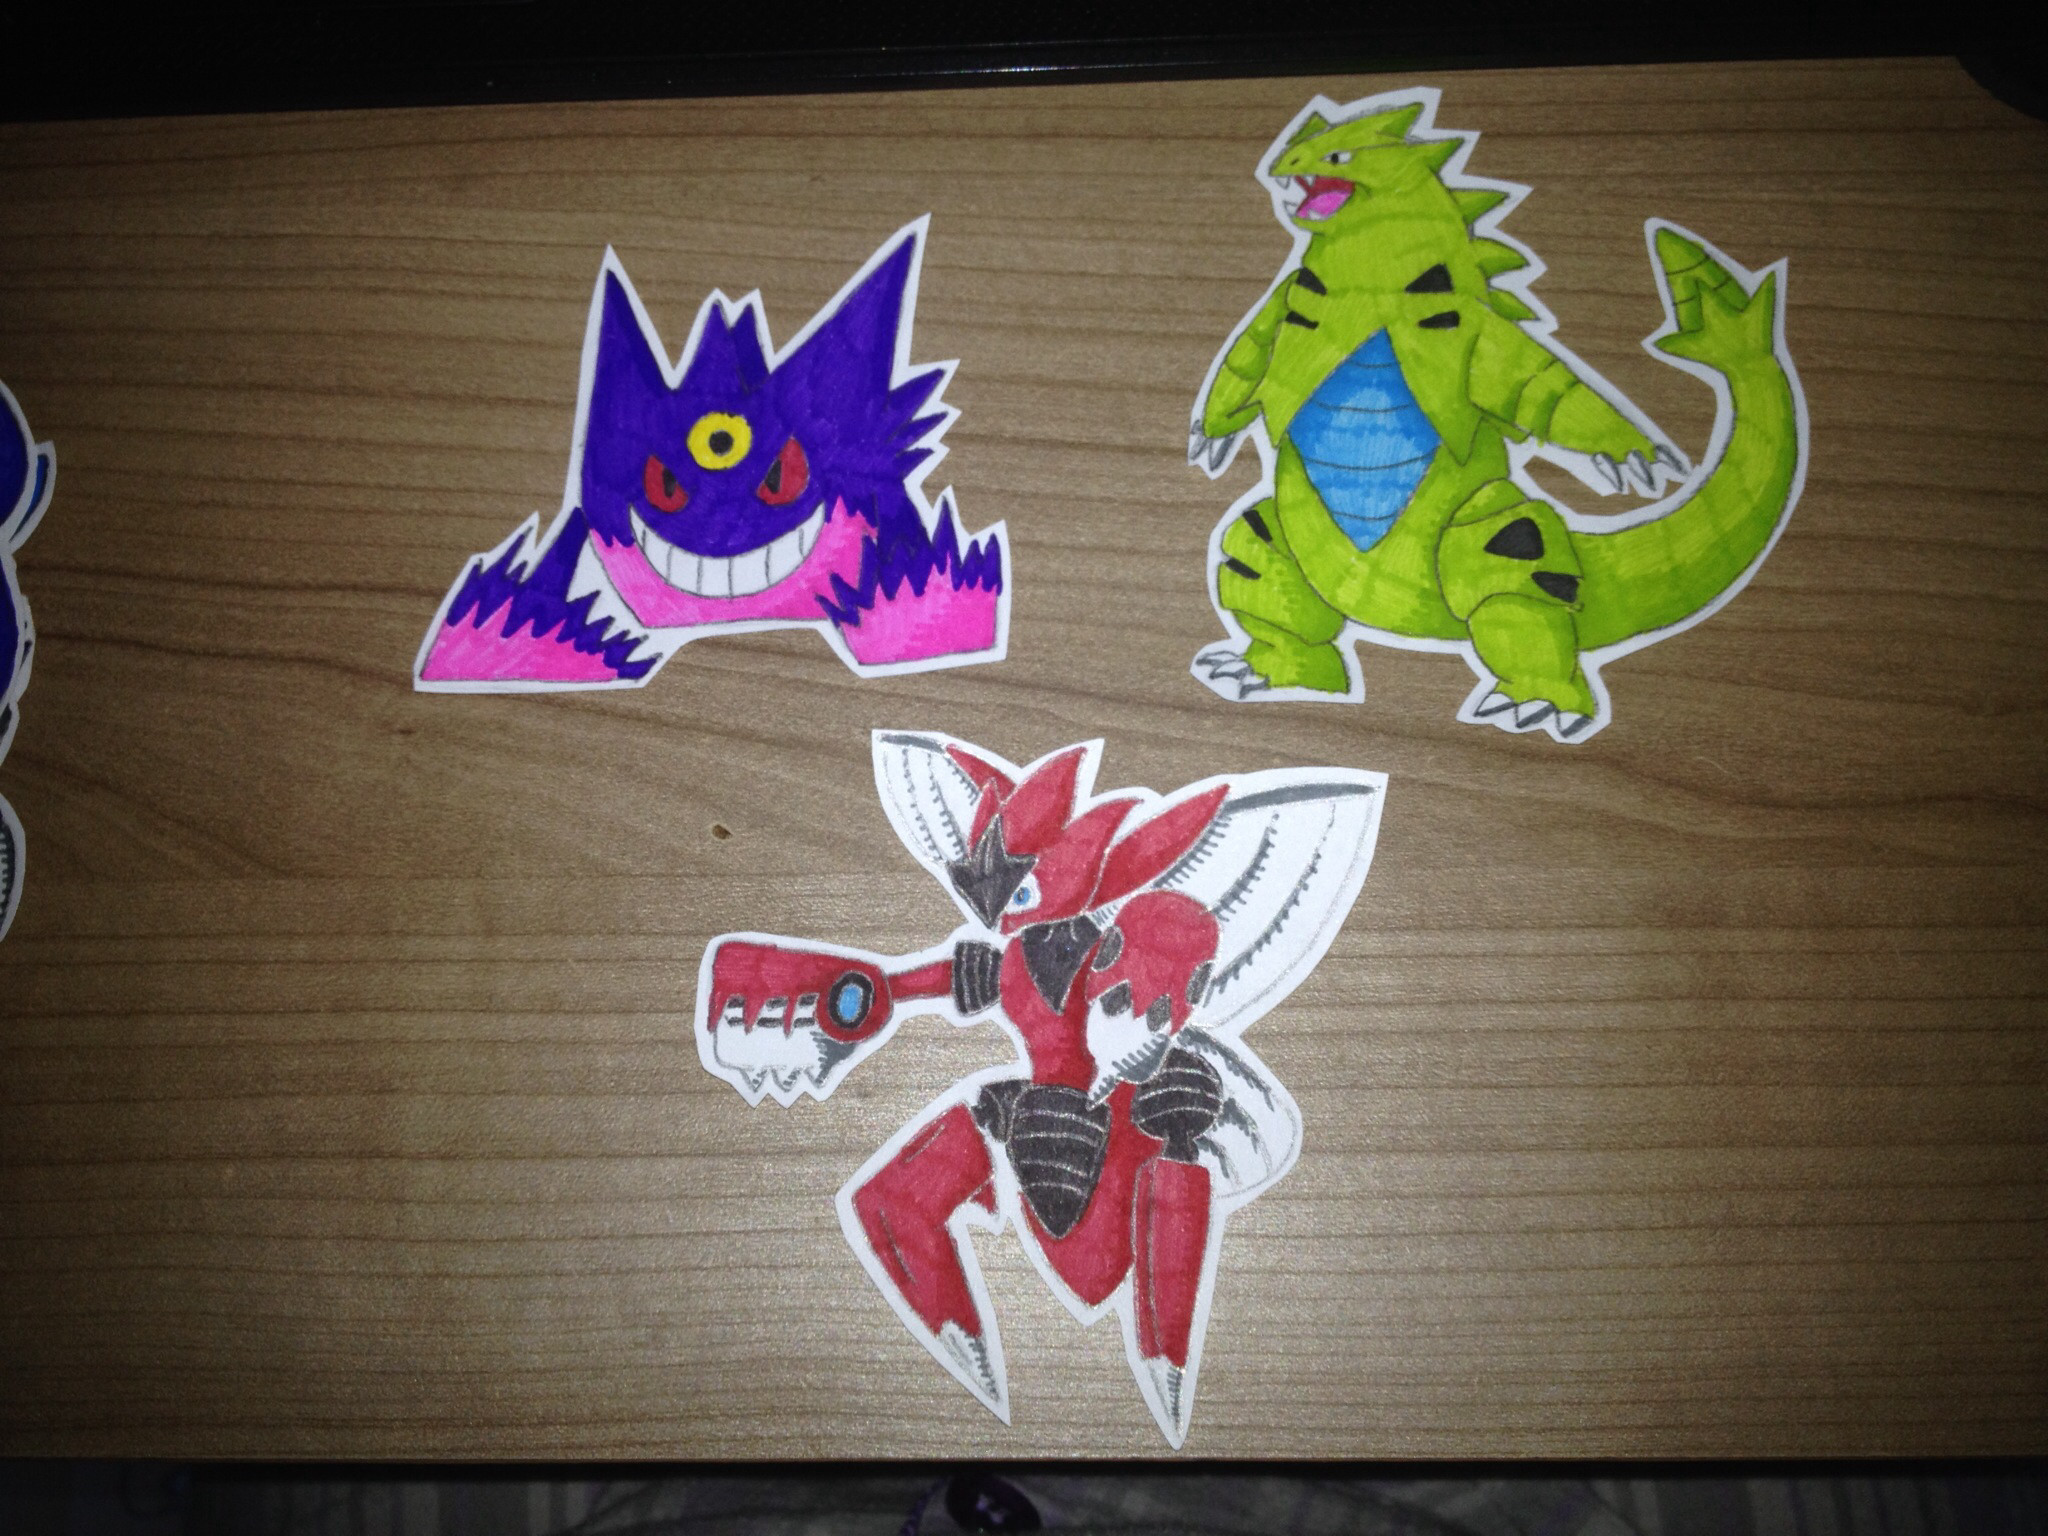 2048x1536 Mega Gengar, Mega Scizor and Tyranitar by Music-Loverrr on DeviantArt